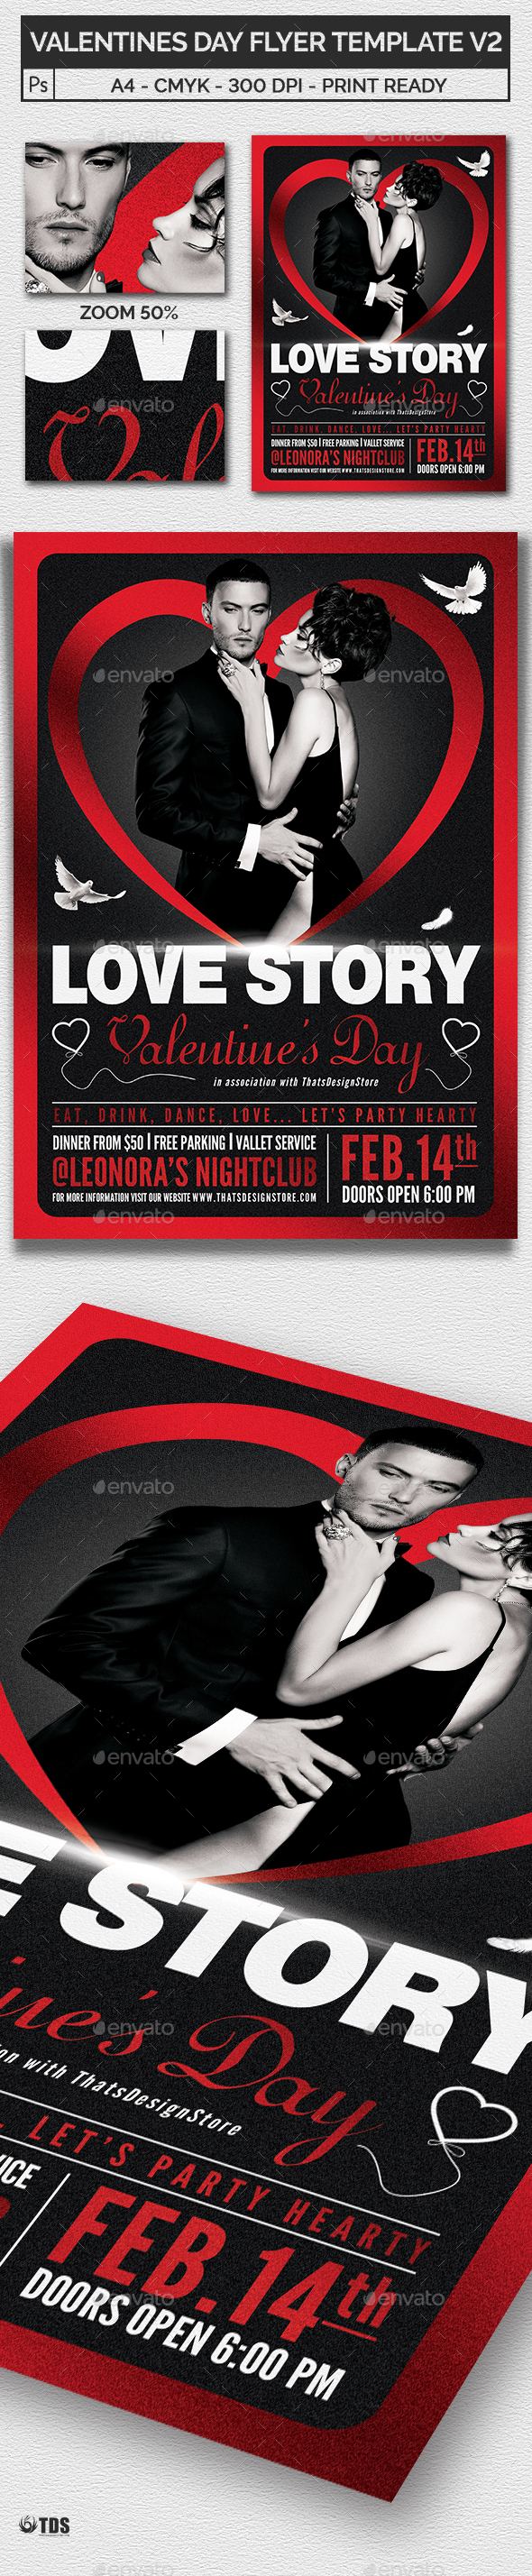 Valentines Day Flyer Template V2